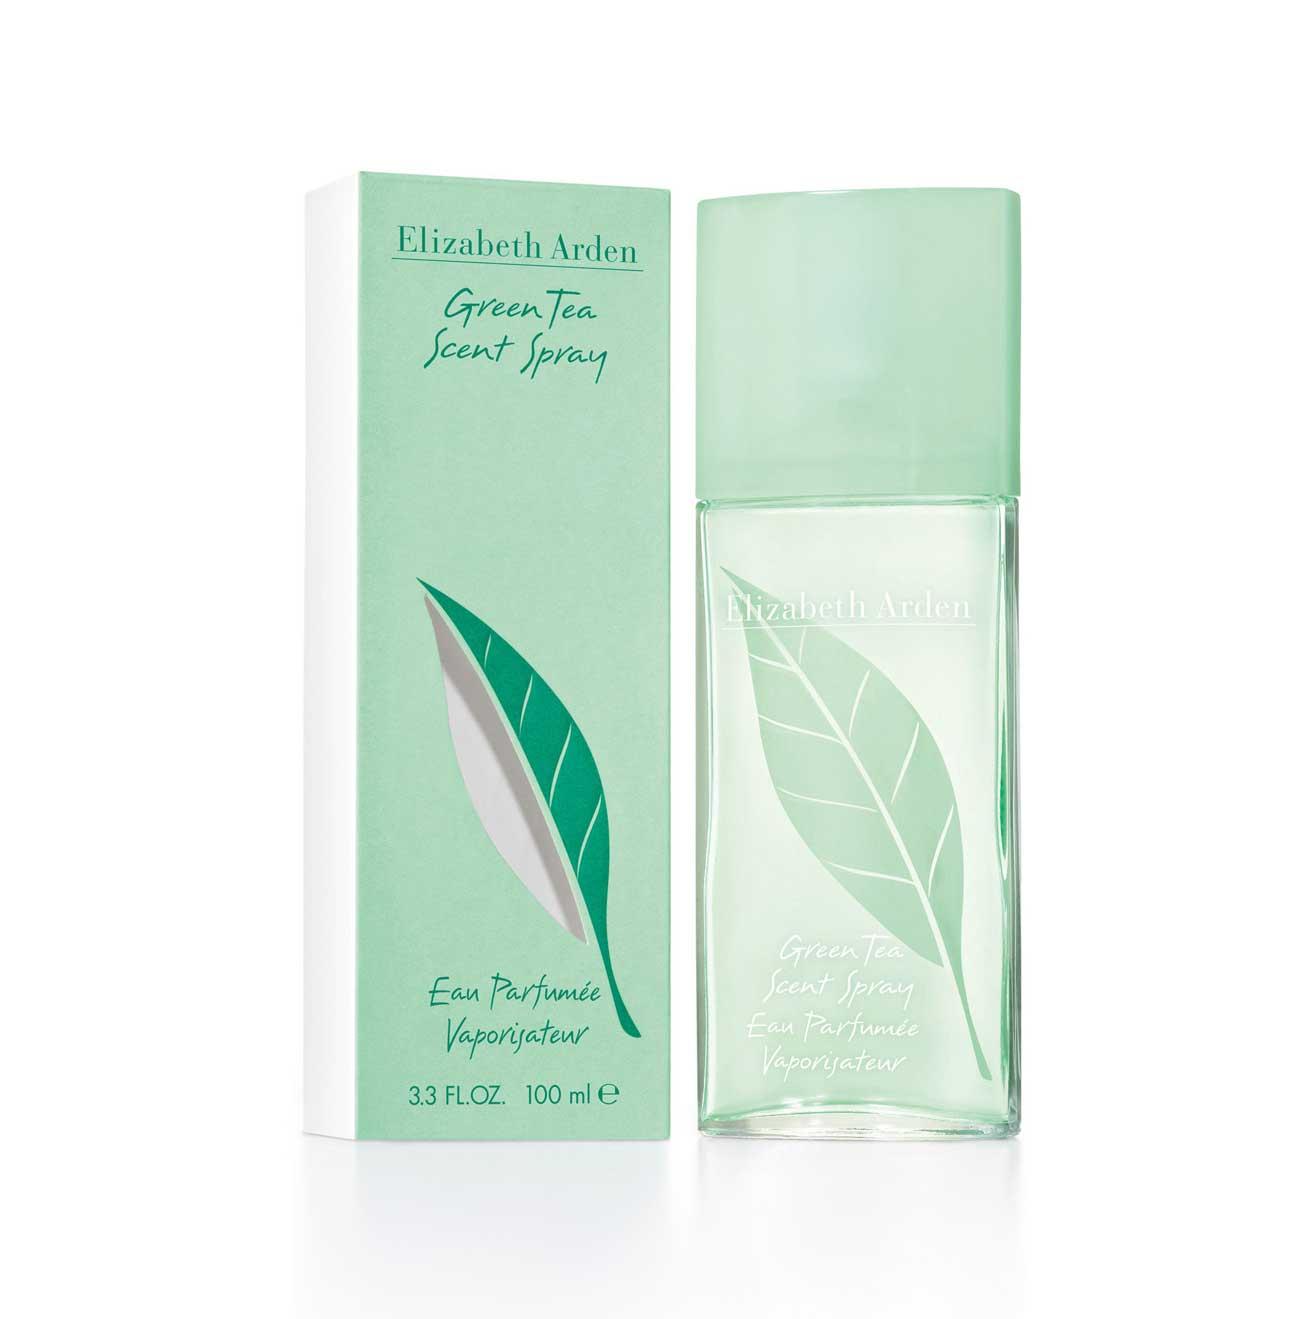 Green Tea Scent Spray 100ml